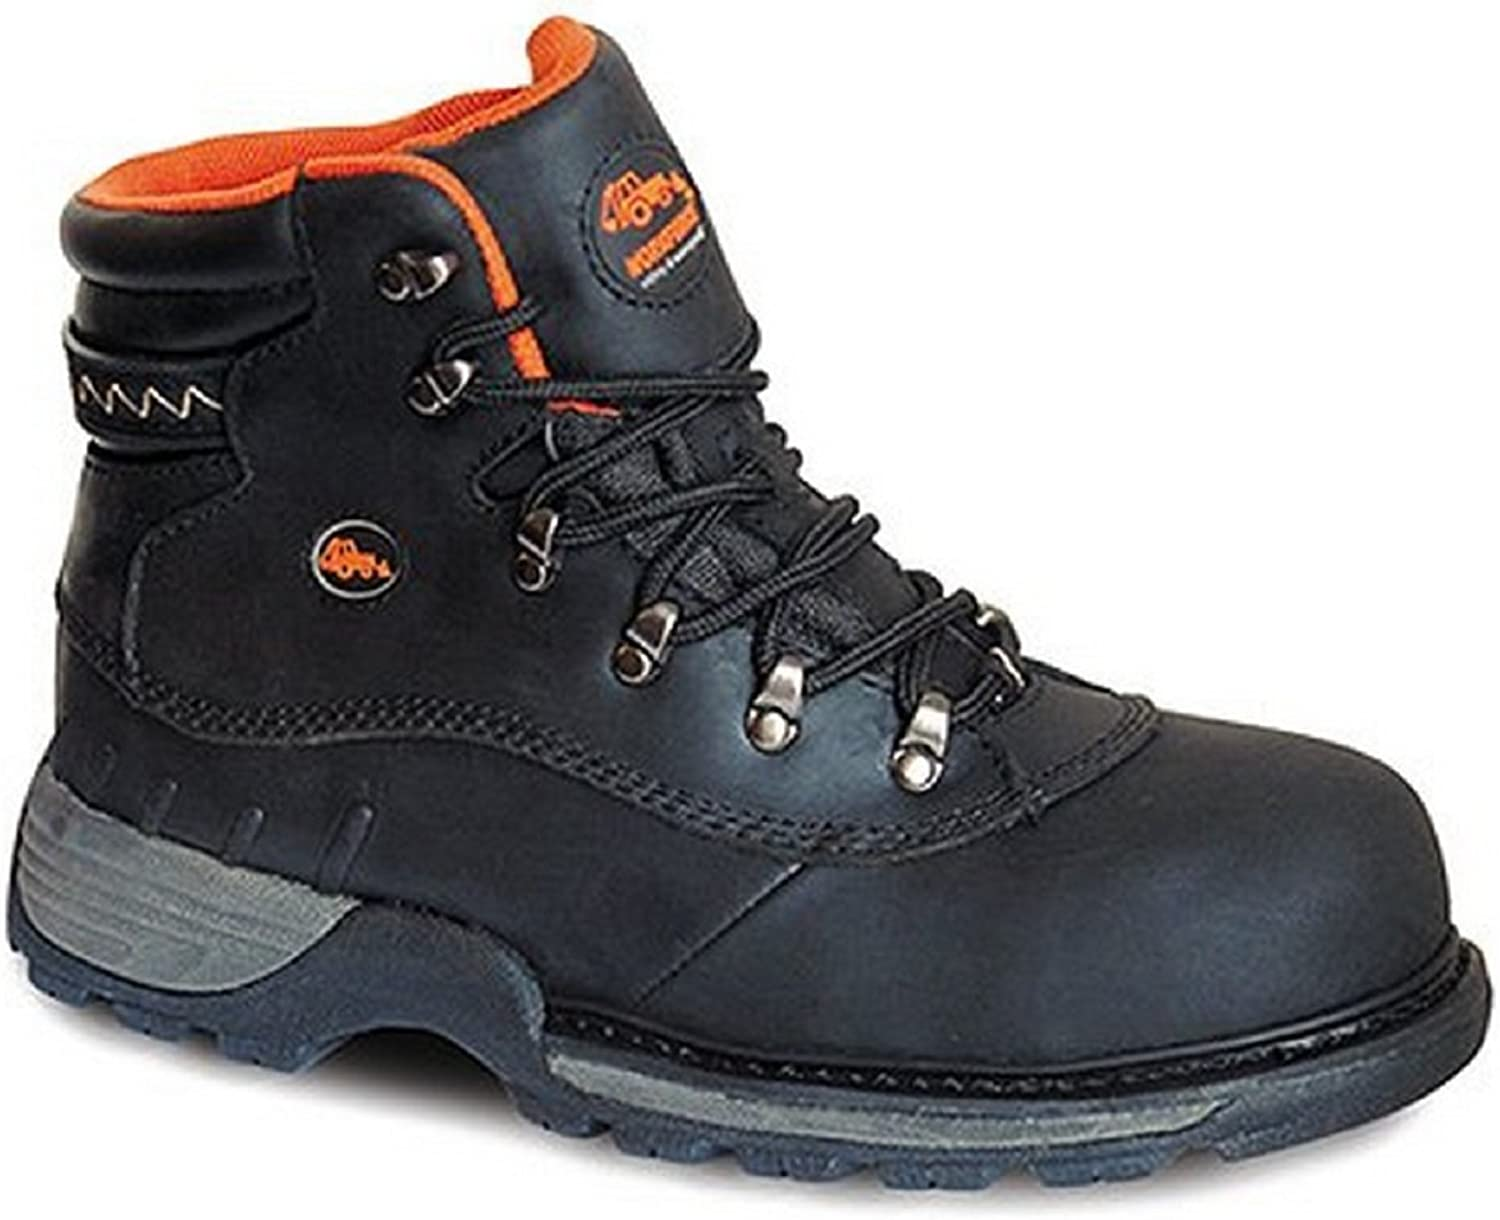 Workforce Men's 2P HyDRY Safety Boots